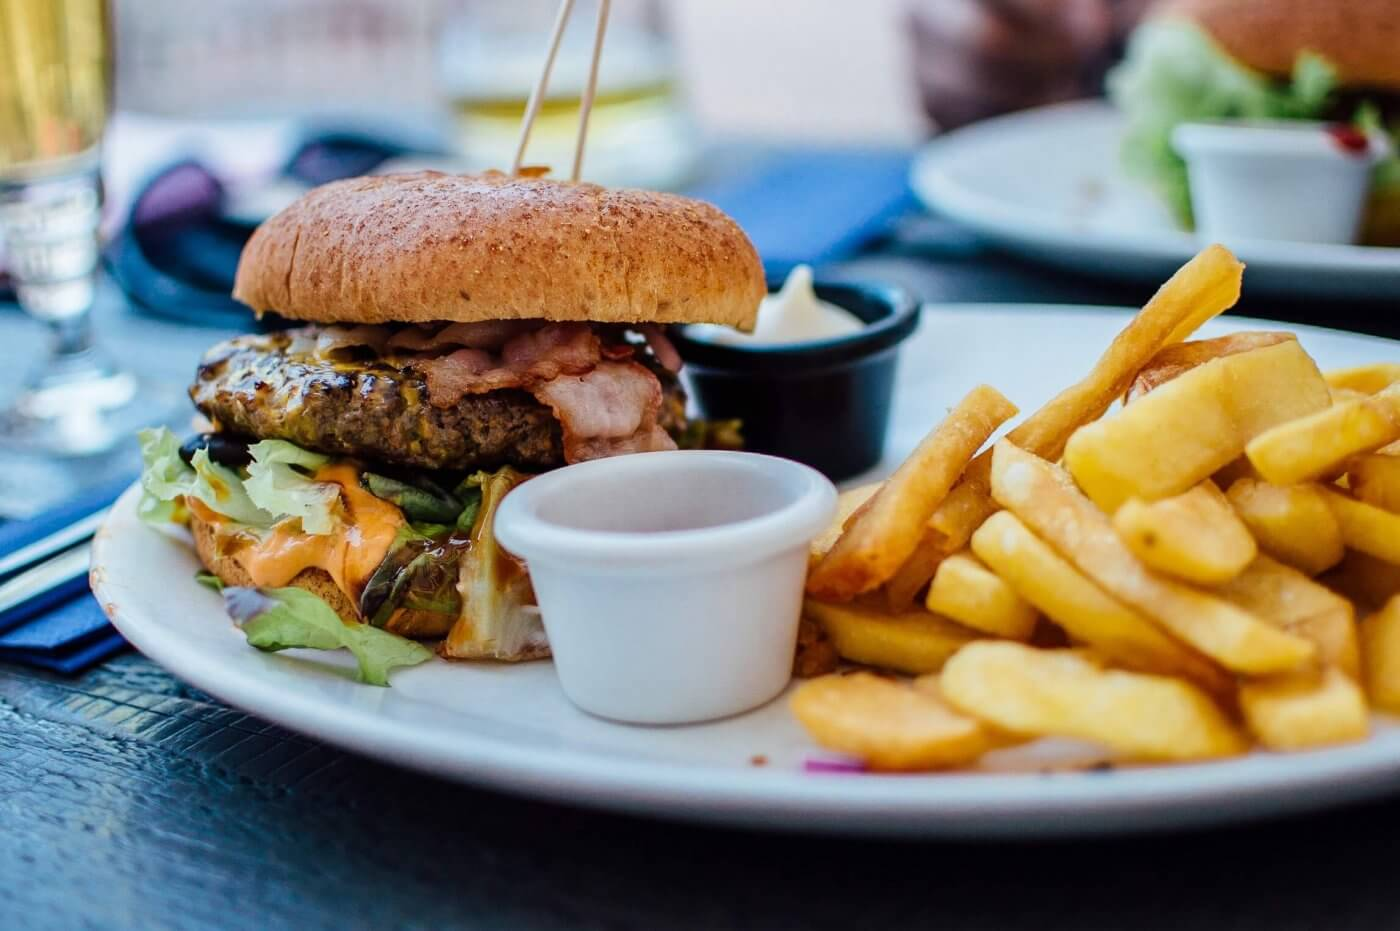 Bacon Cheeseburger & Chips | The Mustcard